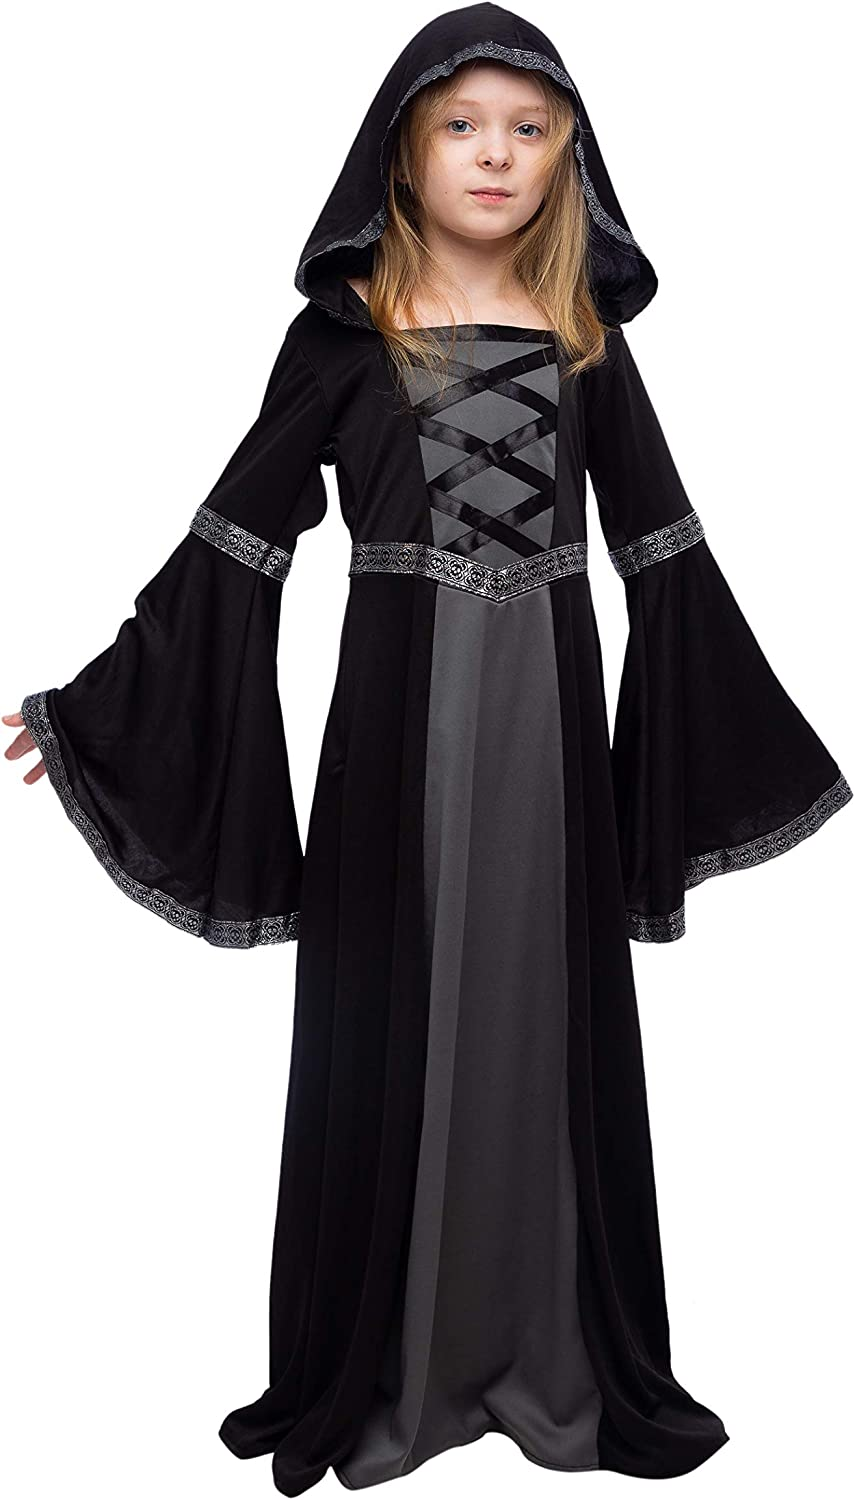 Spooktacular Creations Hooded Robe Costume for Girls Halloween Role-Playing Party